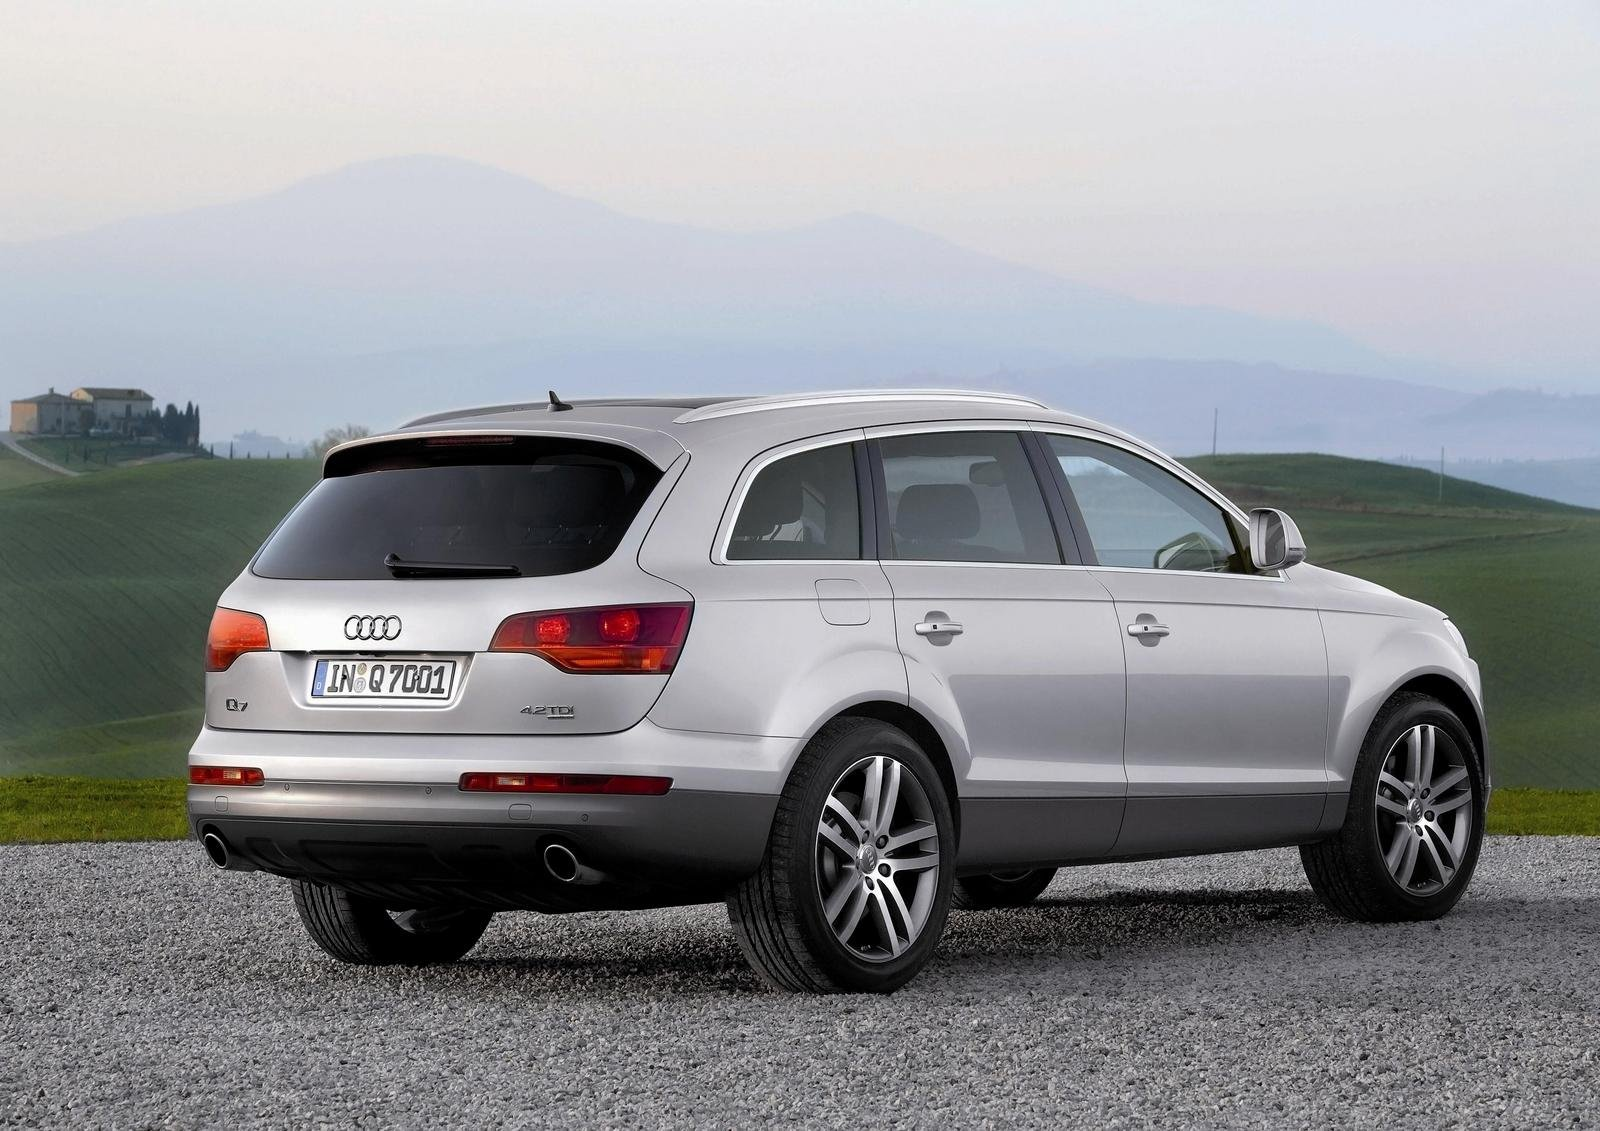 2007 audi q7 4 2 tdi picture 166676 car review top speed. Black Bedroom Furniture Sets. Home Design Ideas